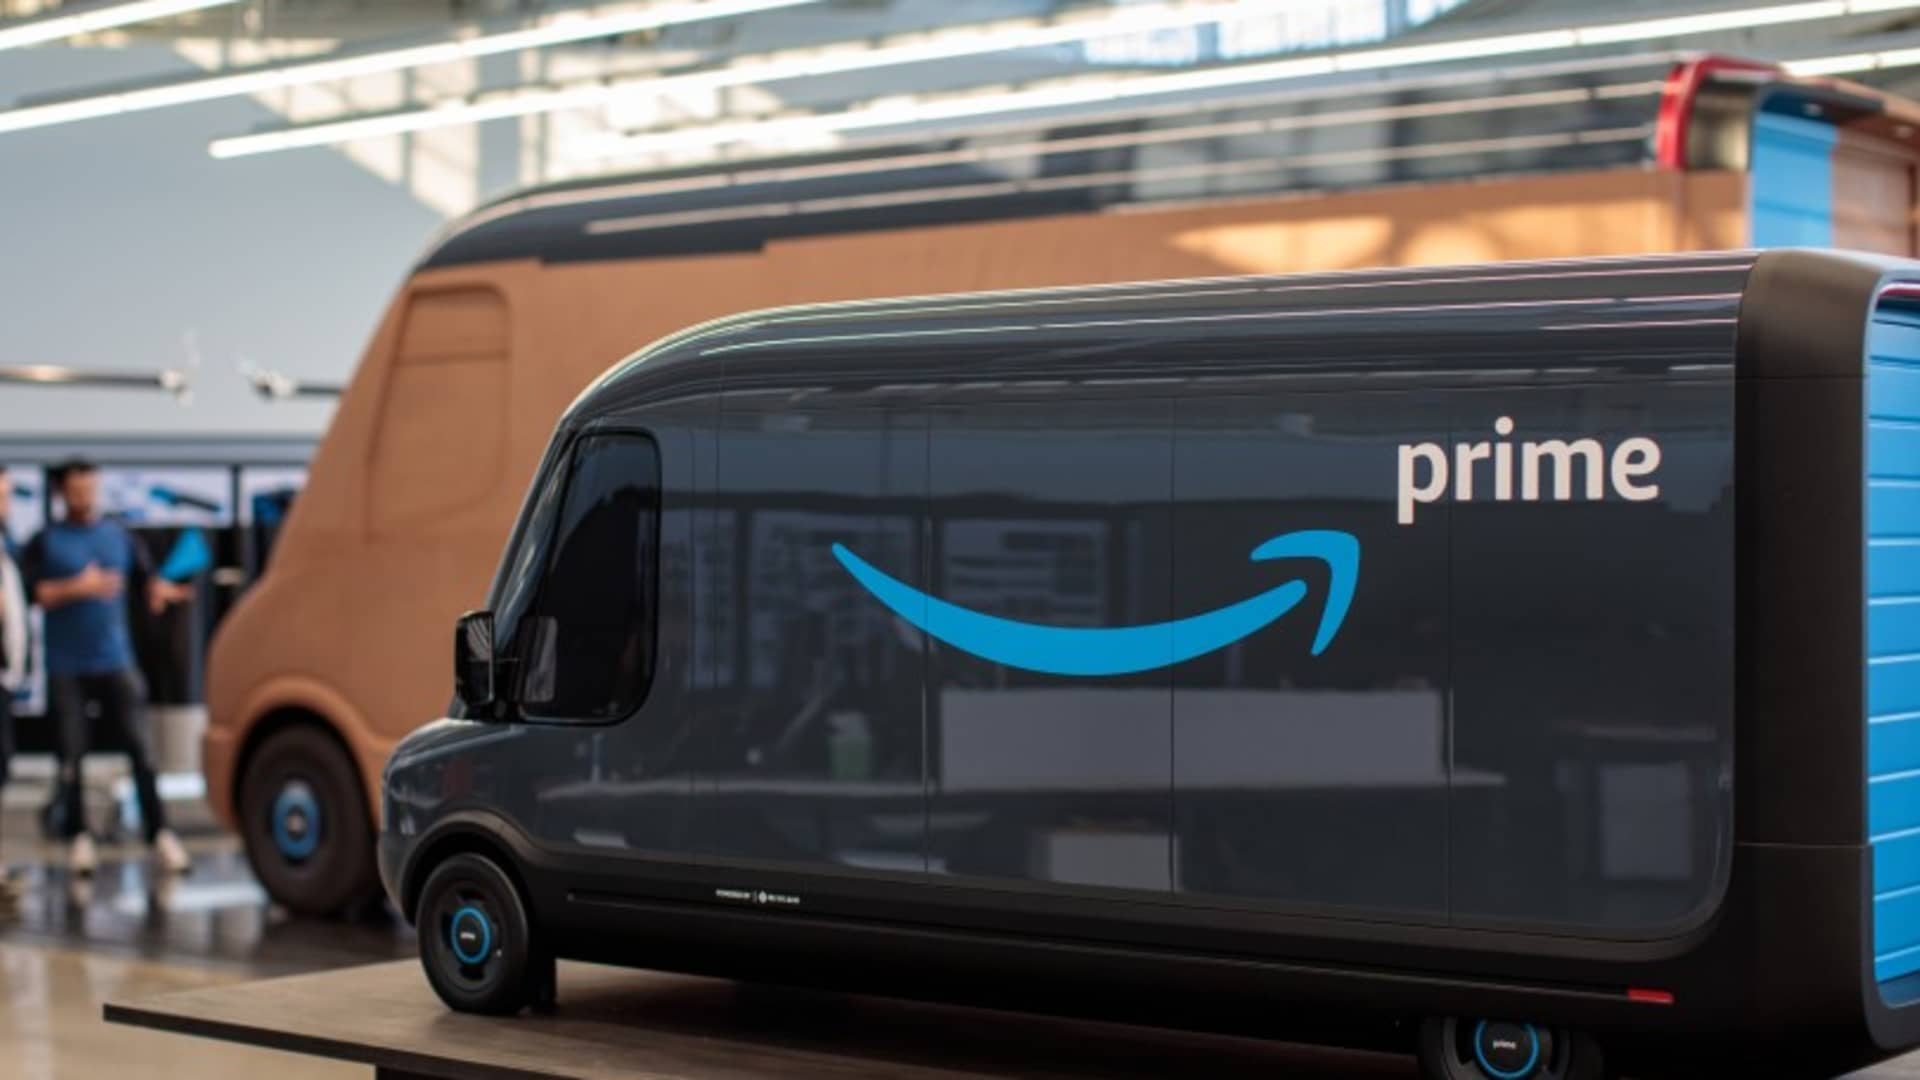 Amazon plans to have 10,000 new electric delivery vans from Rivian on the road as early as 2022 and 100,000 of the vehicles on the road by 2030.